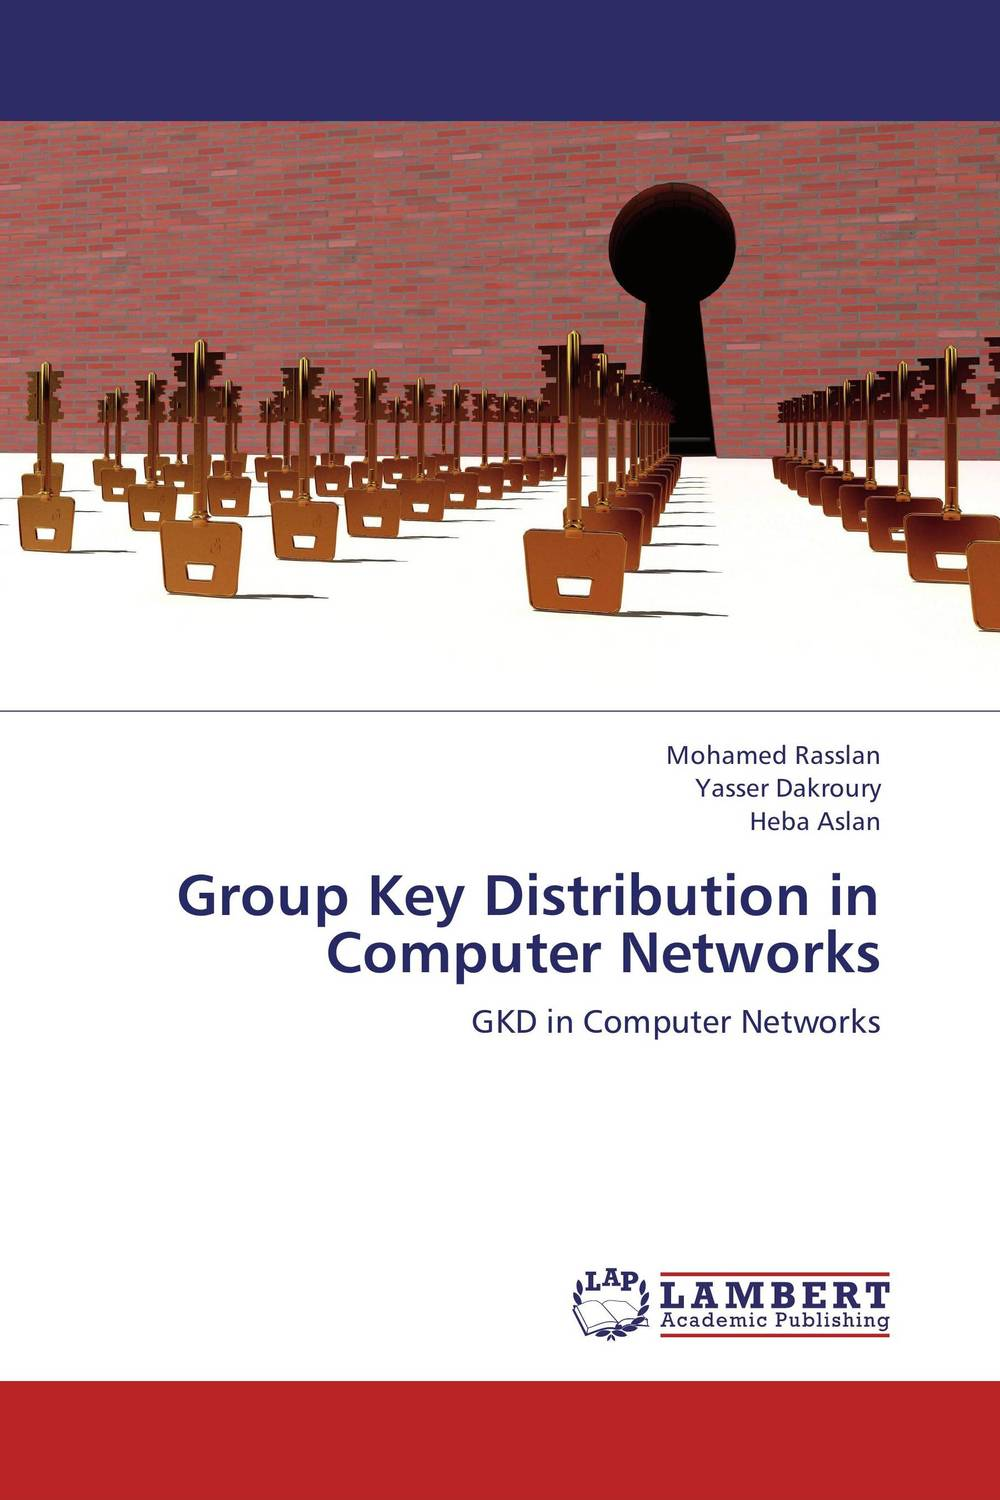 Group Key Distribution in Computer Networks collusion